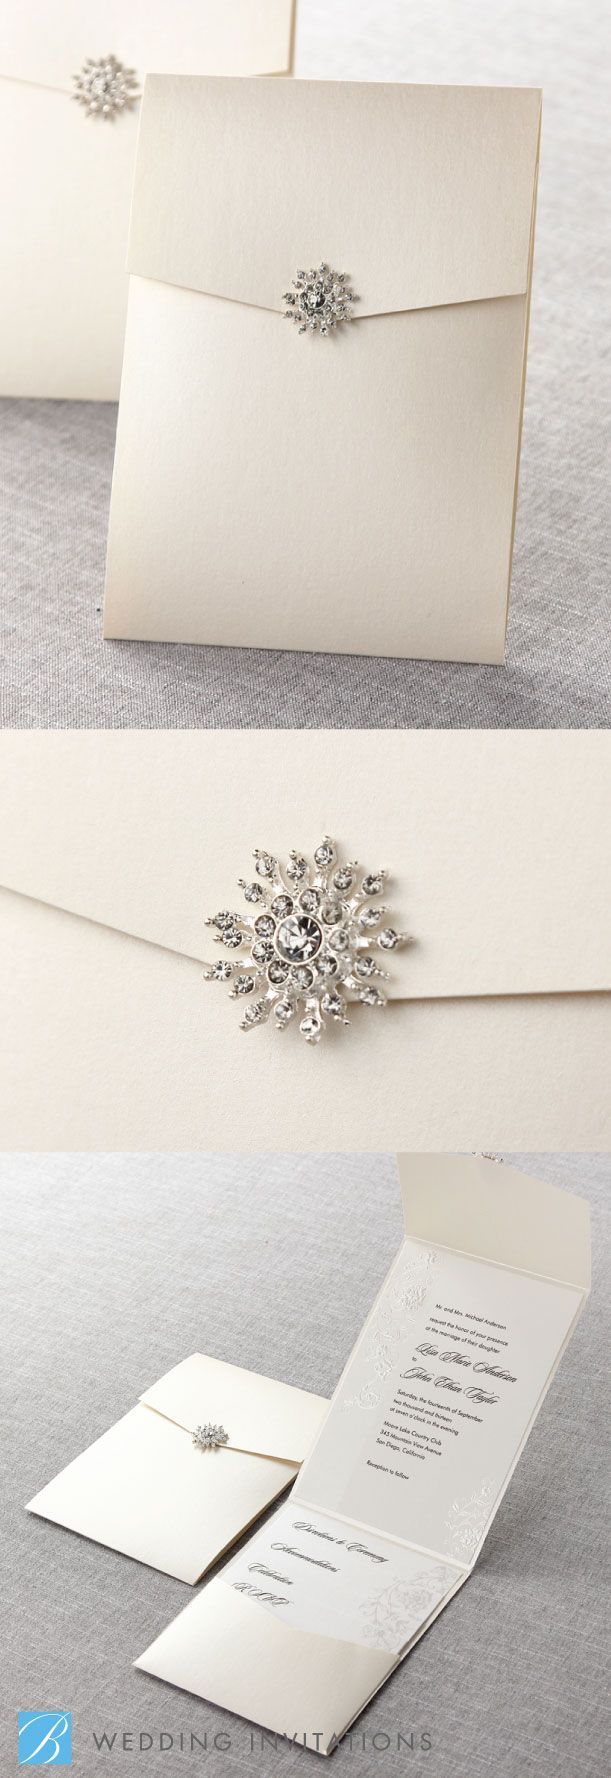 High Quality Embossed Romantic Couture By B Wedding Invitations... I Like The Idea Of  Having